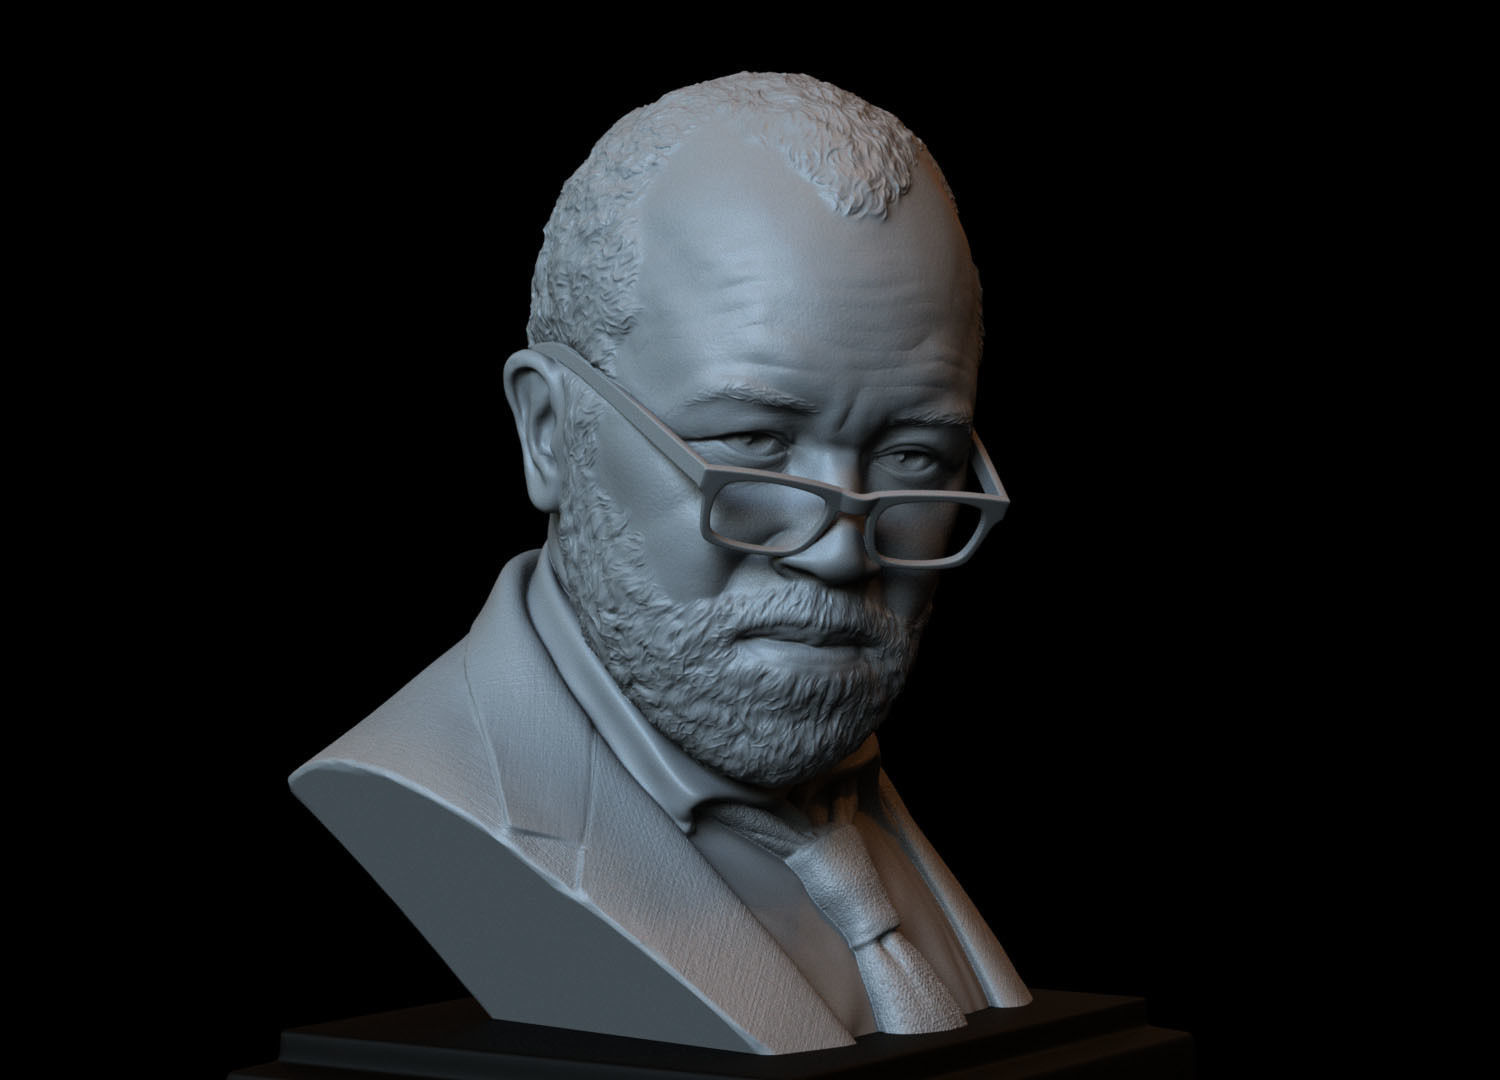 Bernard Lowe -Jeffrey Wright- from Westworld 3d printable bust